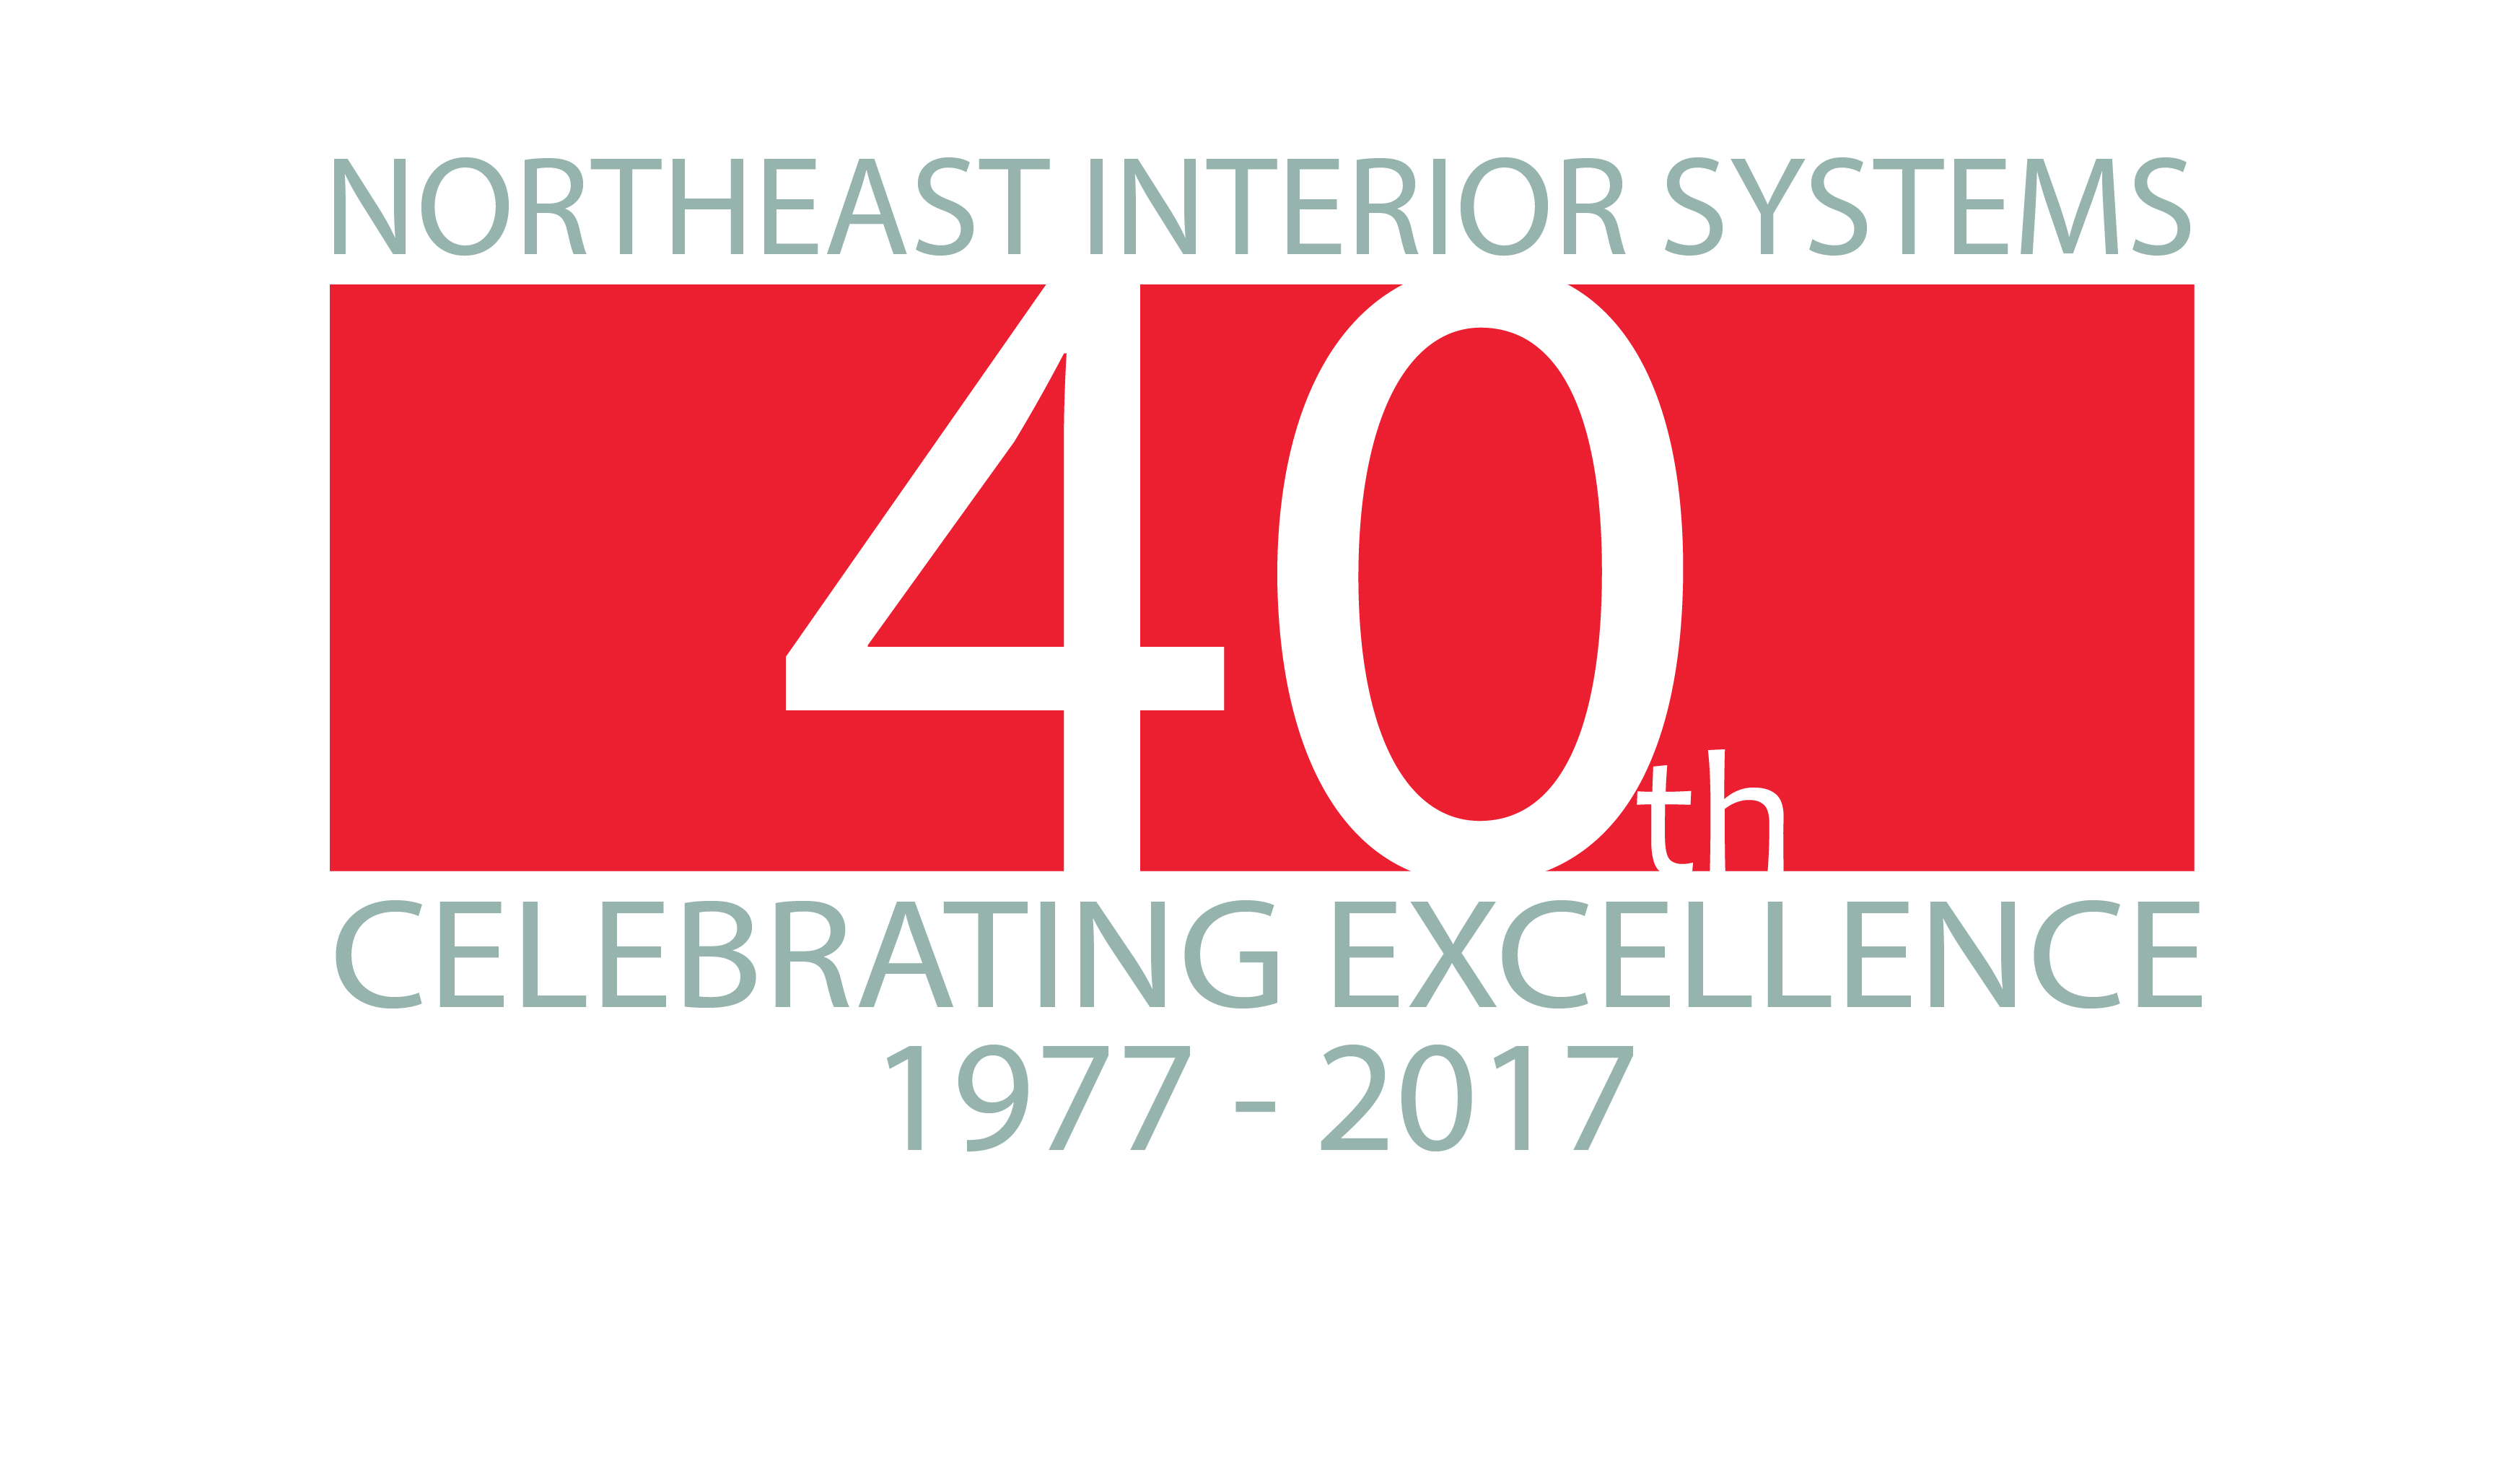 Northeast Interior Systems 40 Years as a Leader - photo